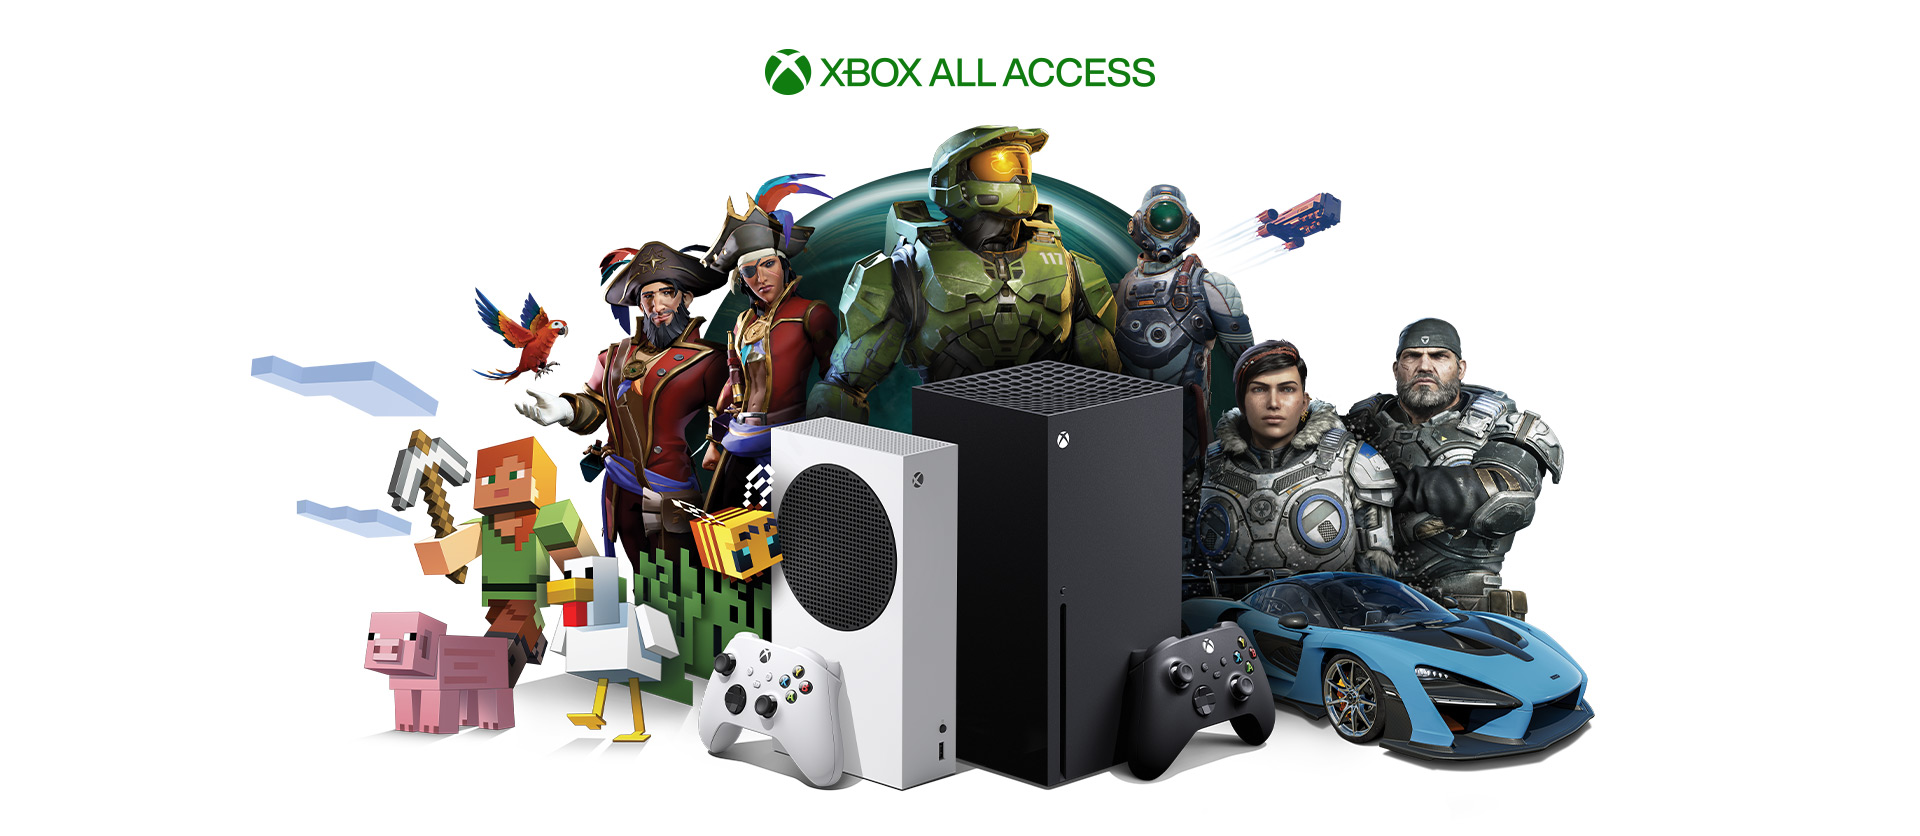 Xbox All Access, Xbox Series X and Xbox Series S with Xbox game characters